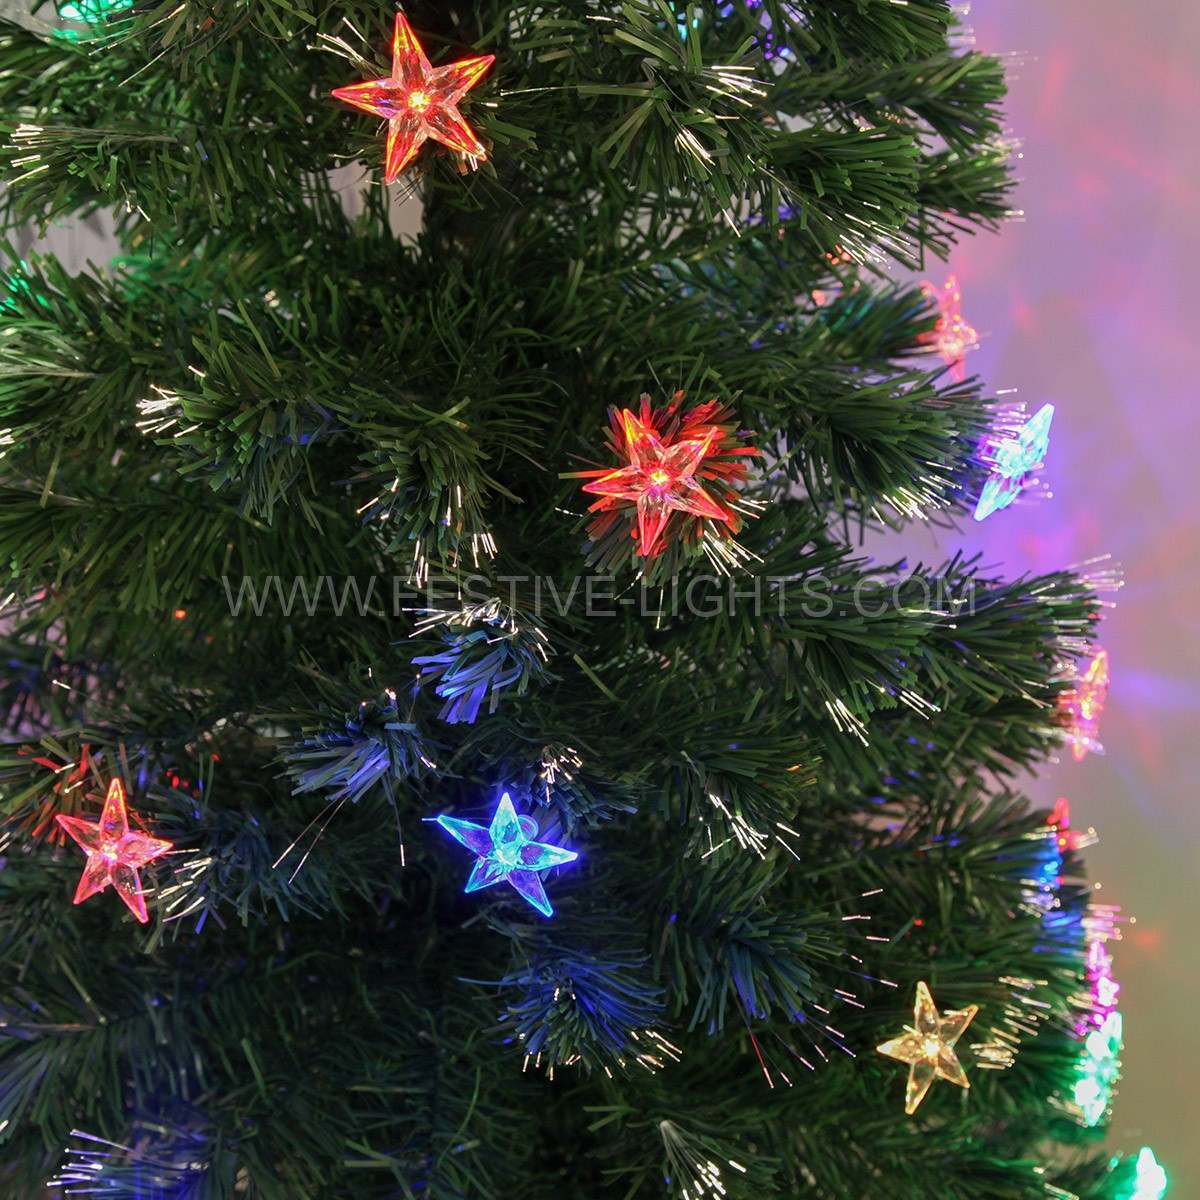 1.8m Colour Changing Fibre Optic Christmas Tree with Festive Themed Decorations